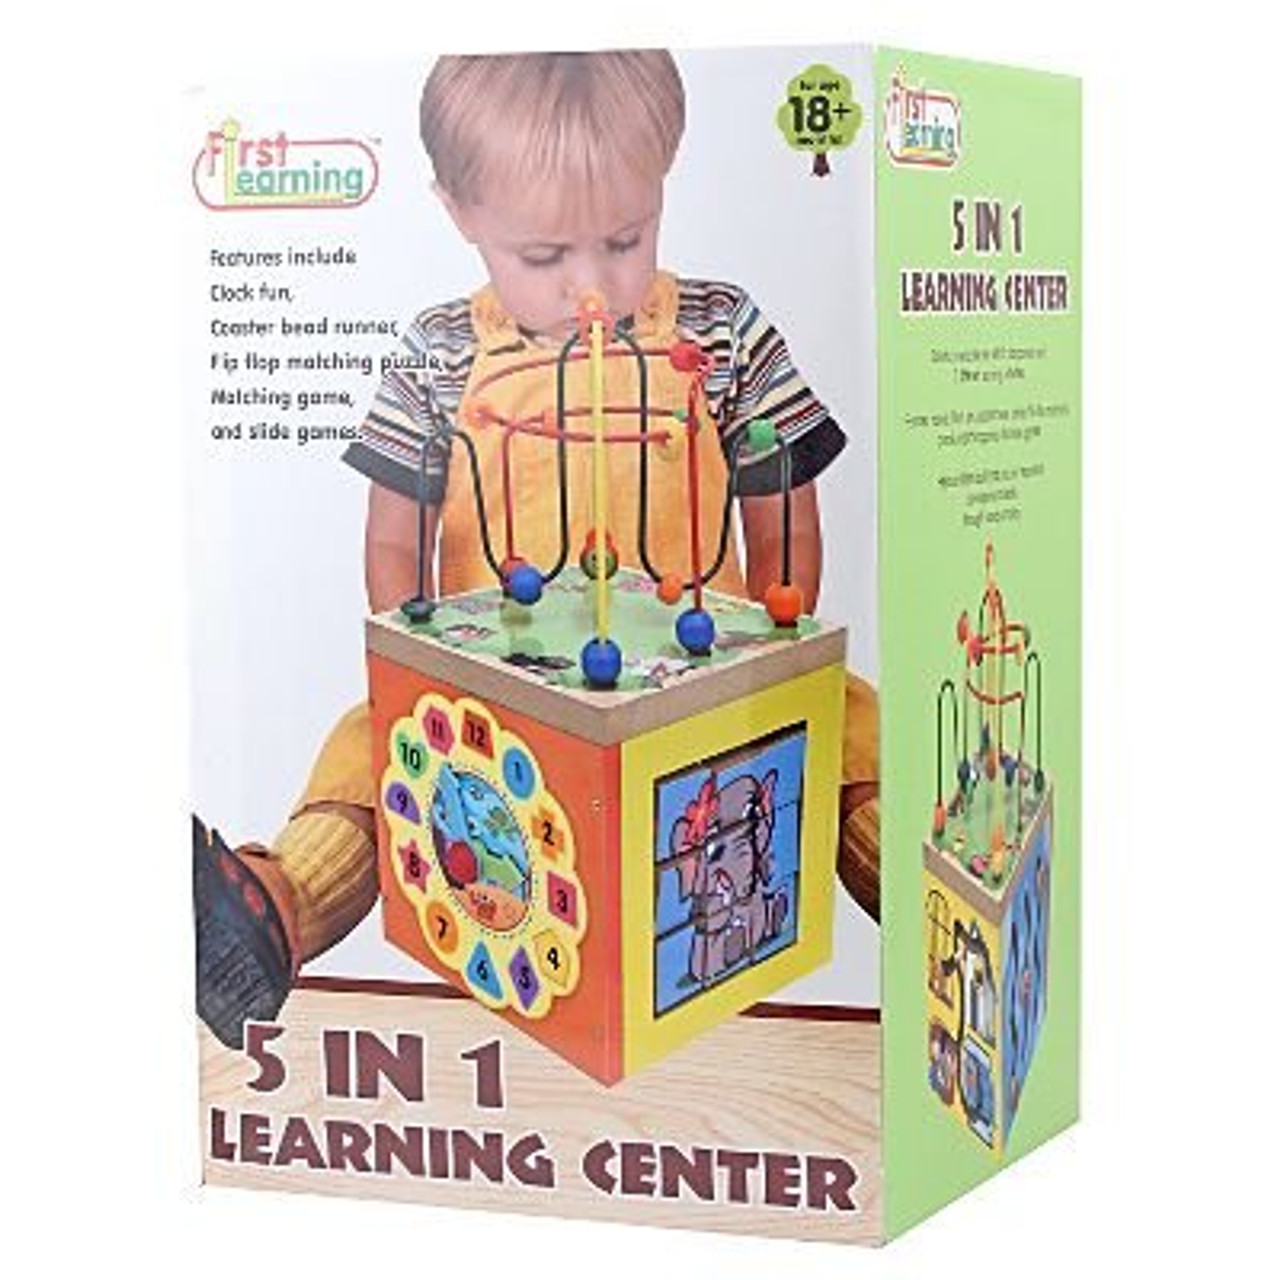 5 In 1 Learning Center